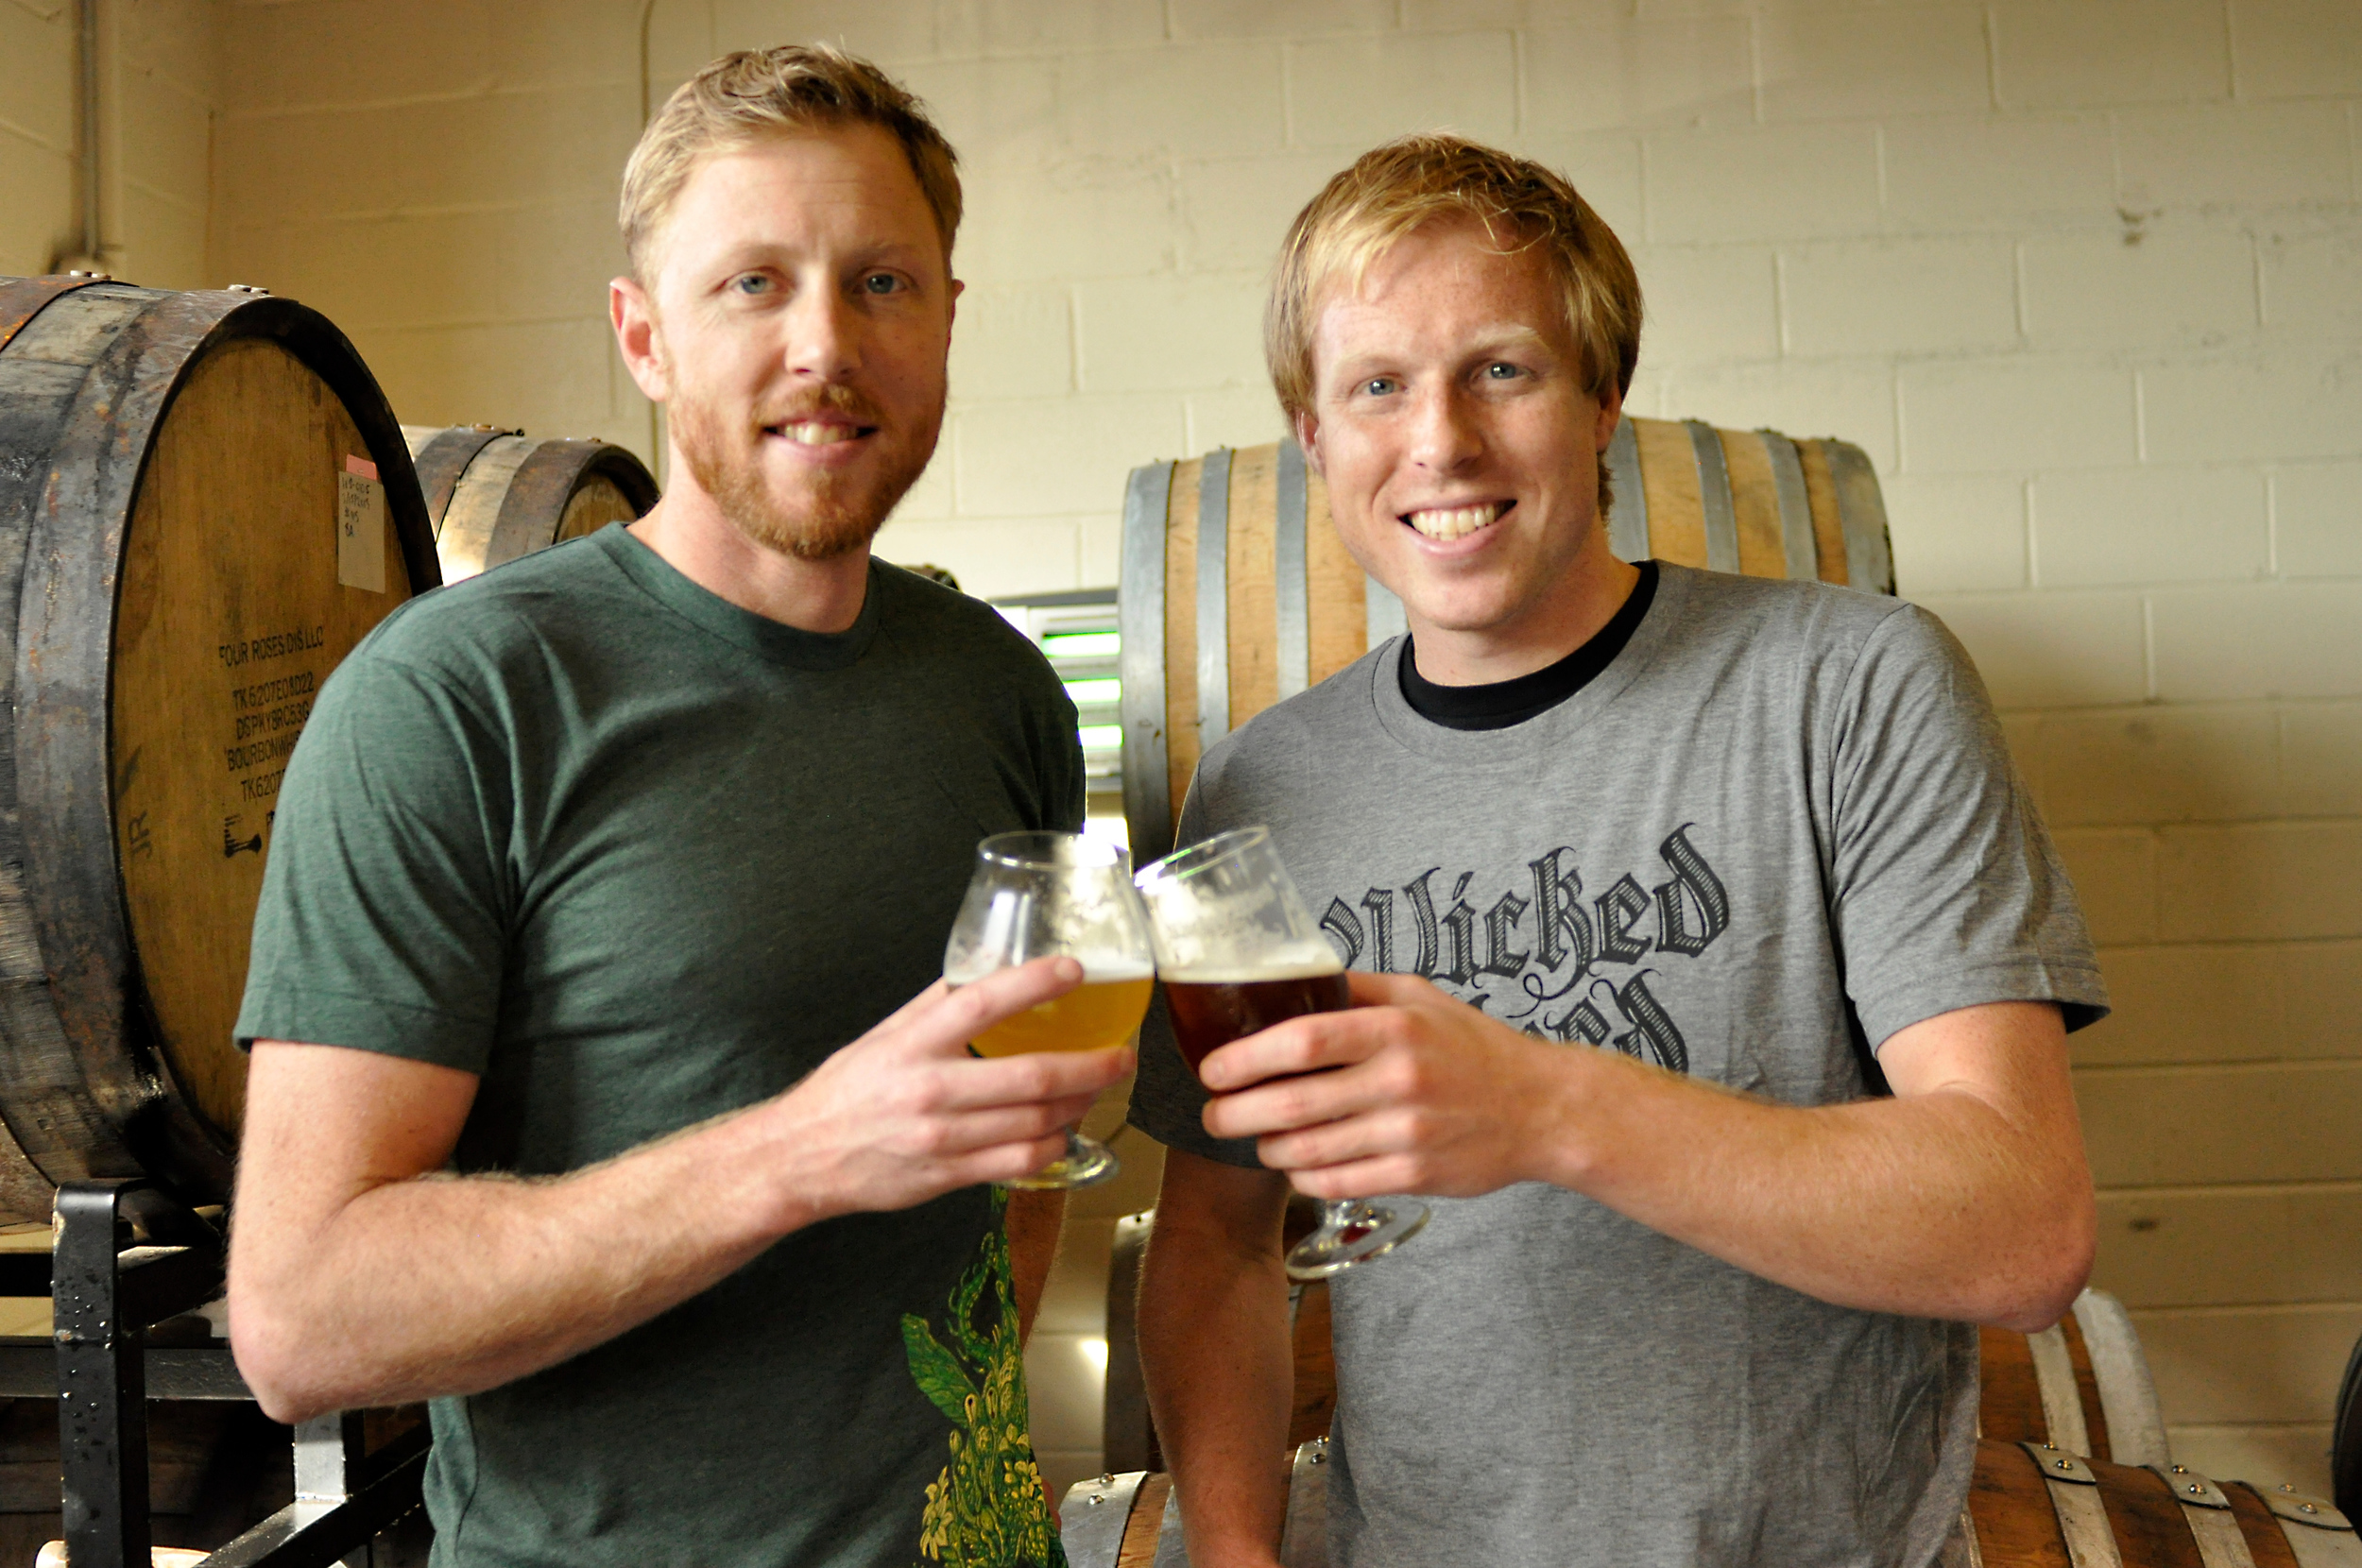 Brothers Walt and Luke Dickinson (from left) - co-founders of Wicked Weed Brewing